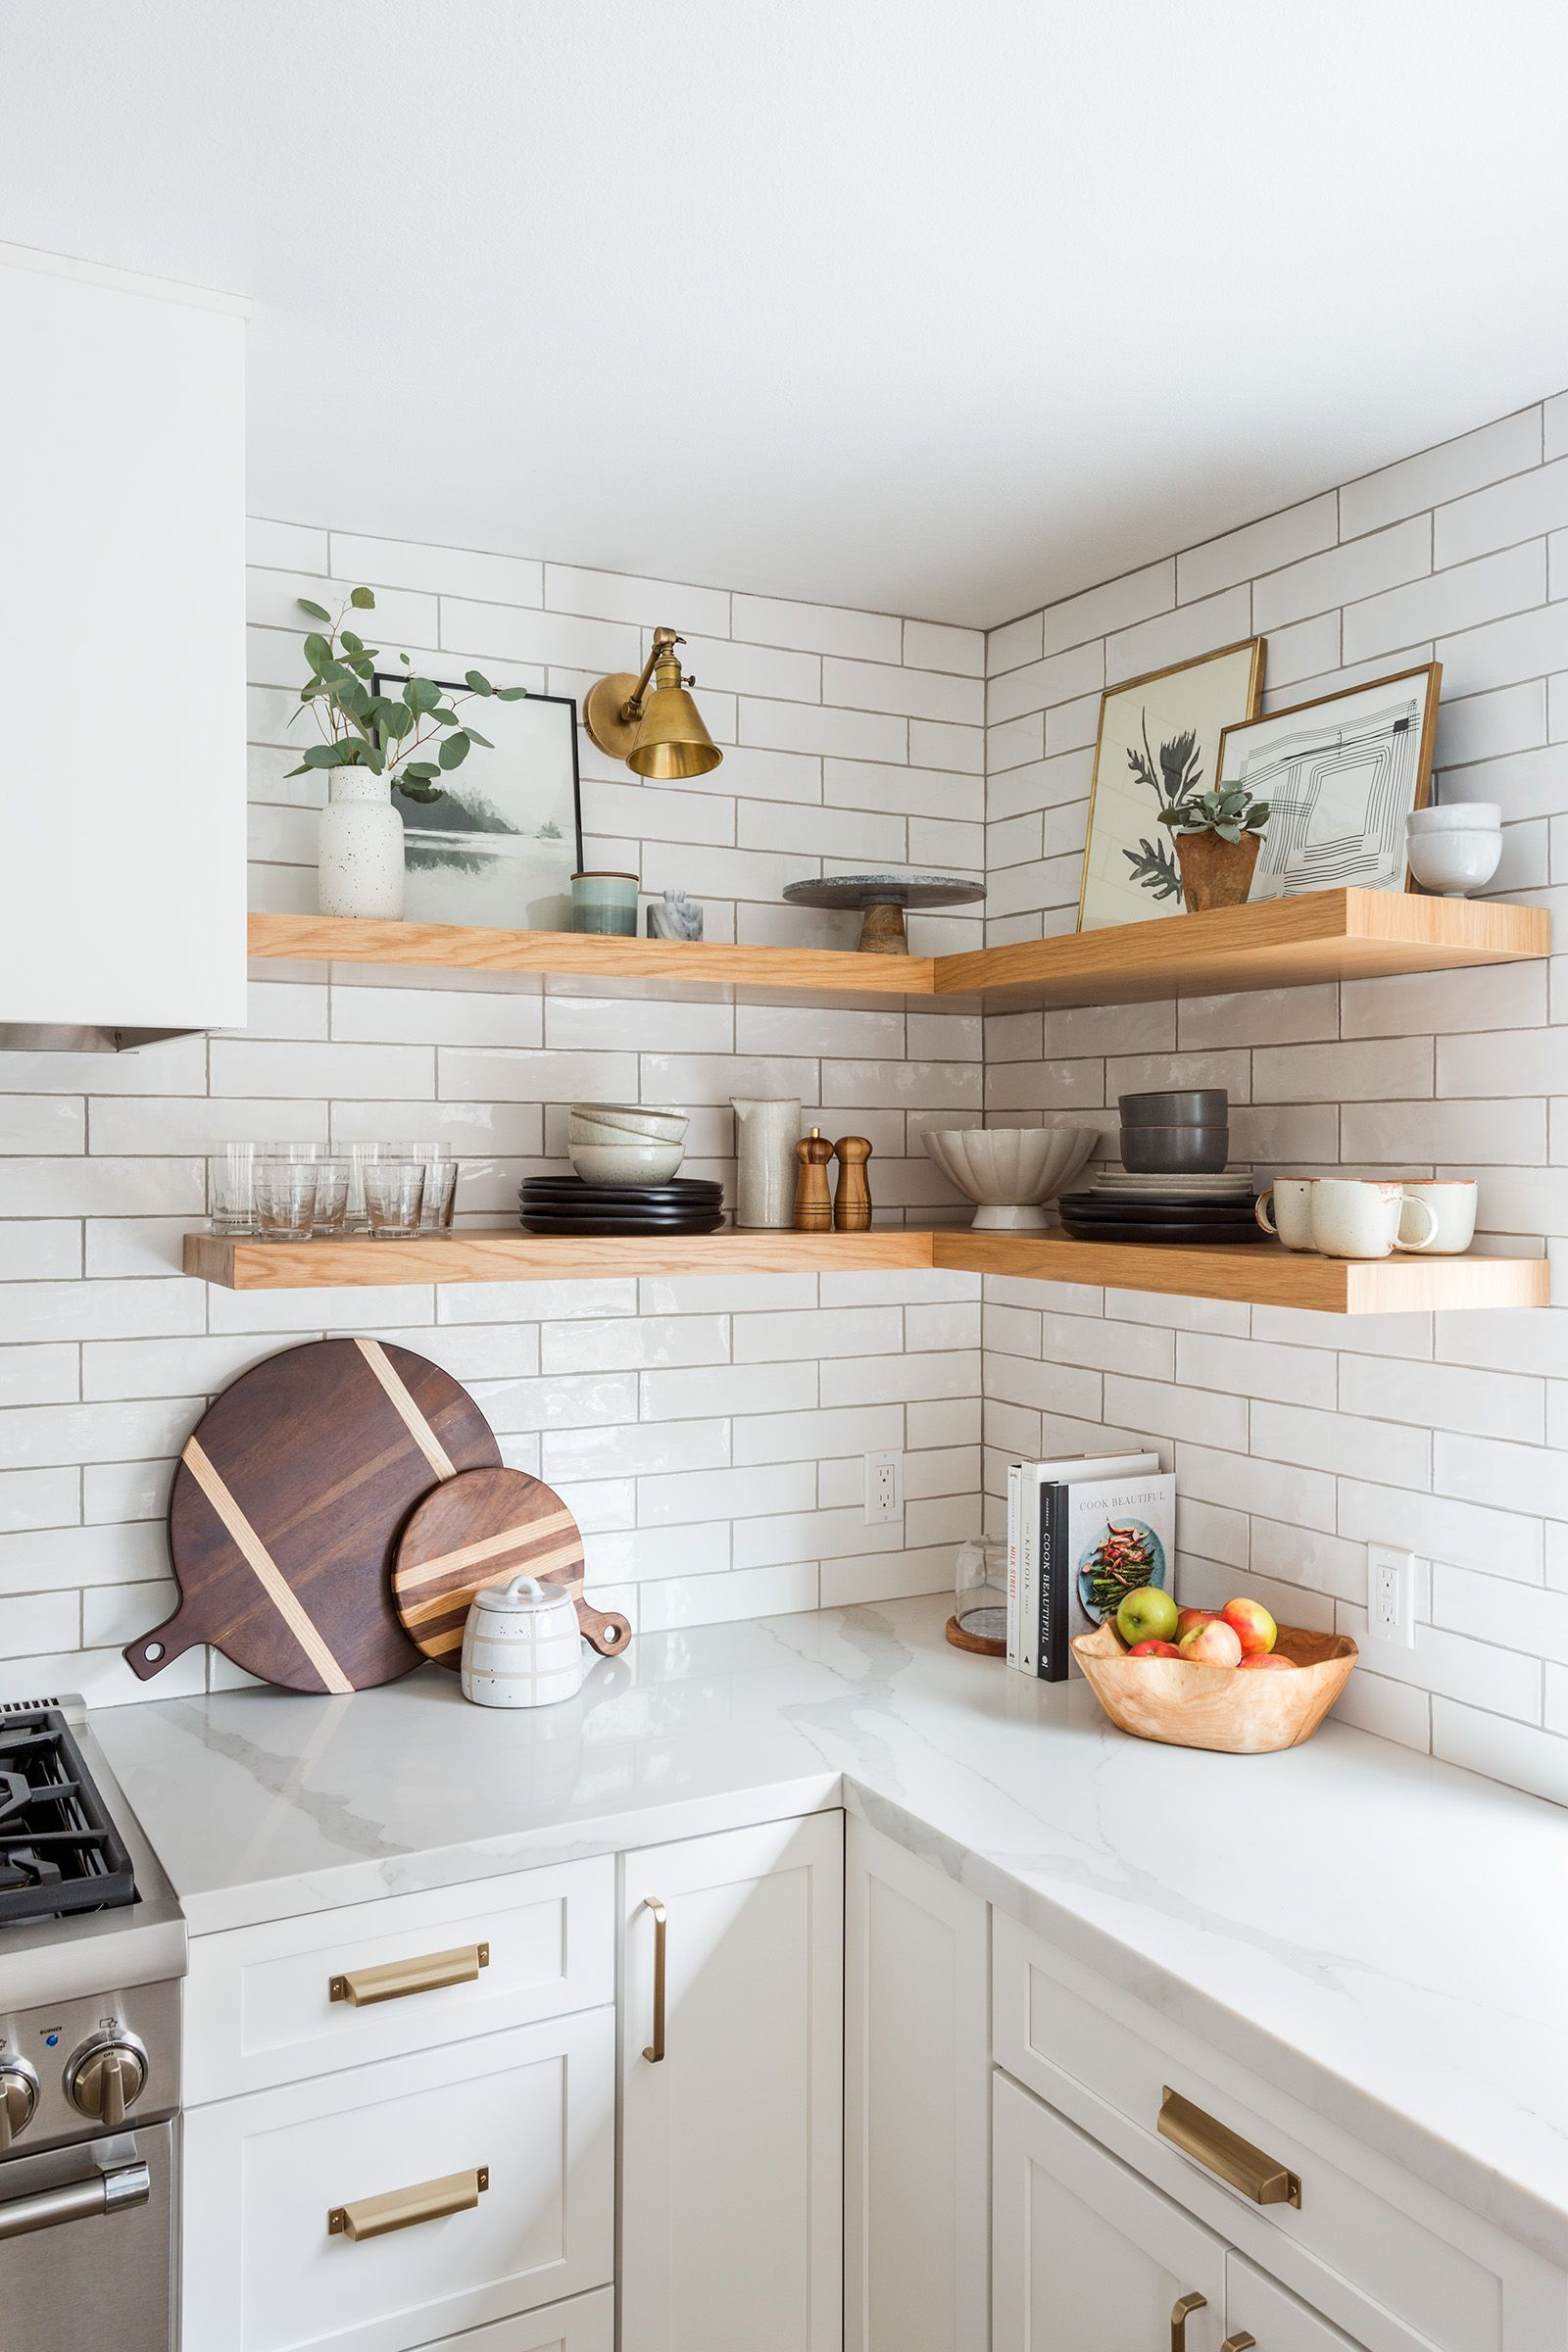 Photo of Oak Hills Kitchen Remodel: Modern white kitchen with subway tiles + statement lighting by Lindsey Bro…